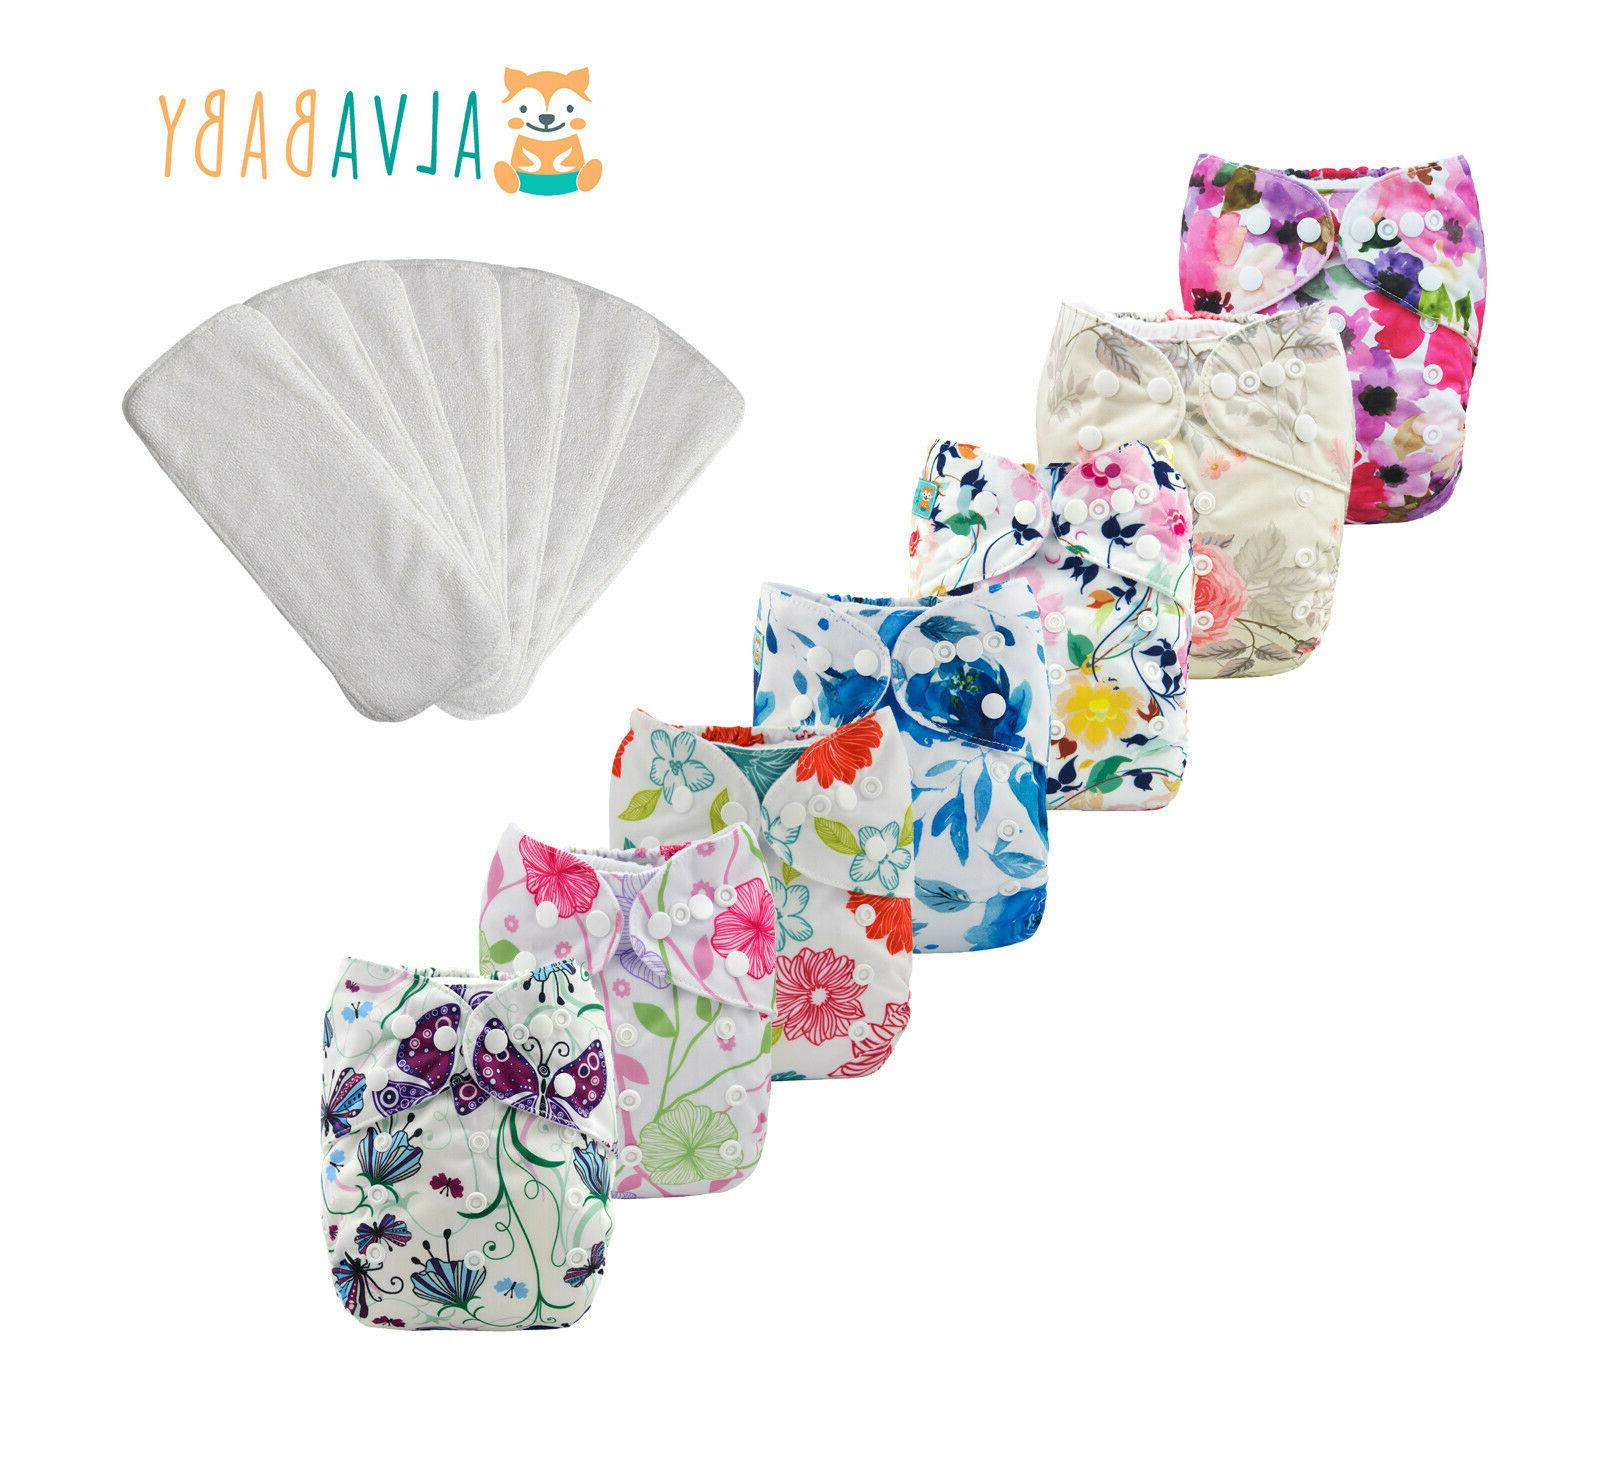 7pcs baby cloth diapers reusable washable pocket